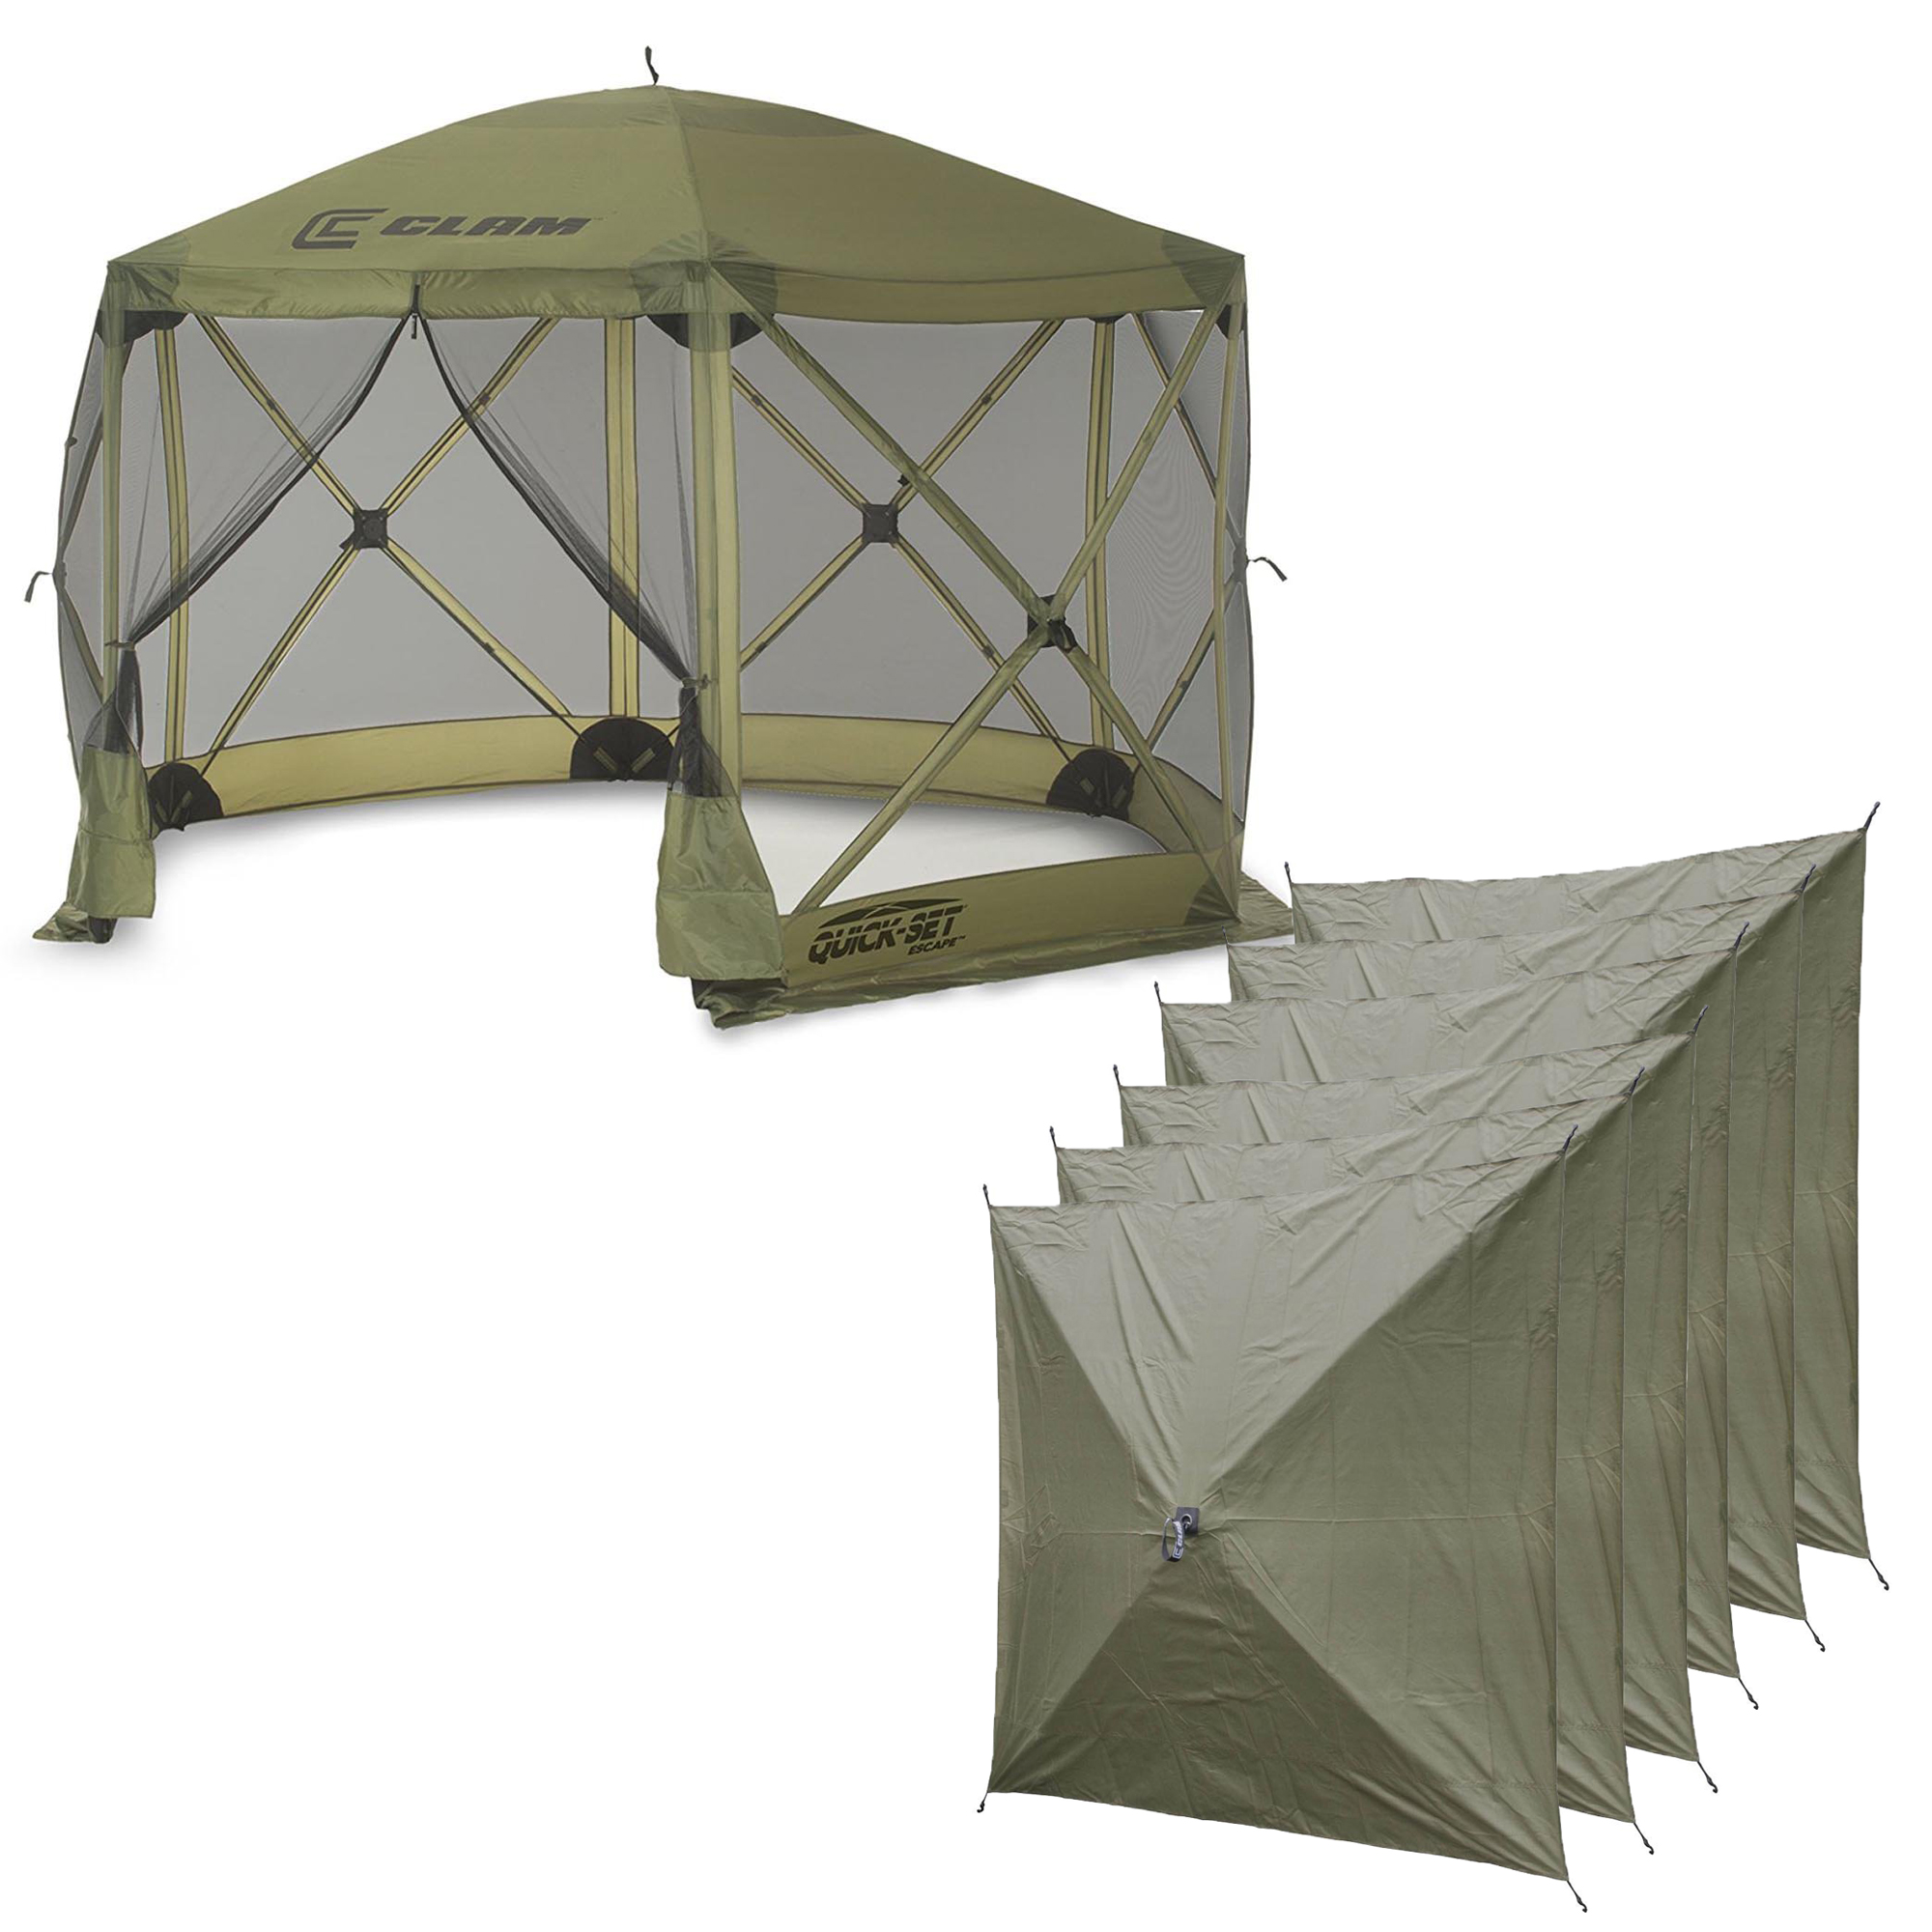 Clam Quick Set Escape Portable Camping Outdoor Canopy Screen & 6 Wind Panels